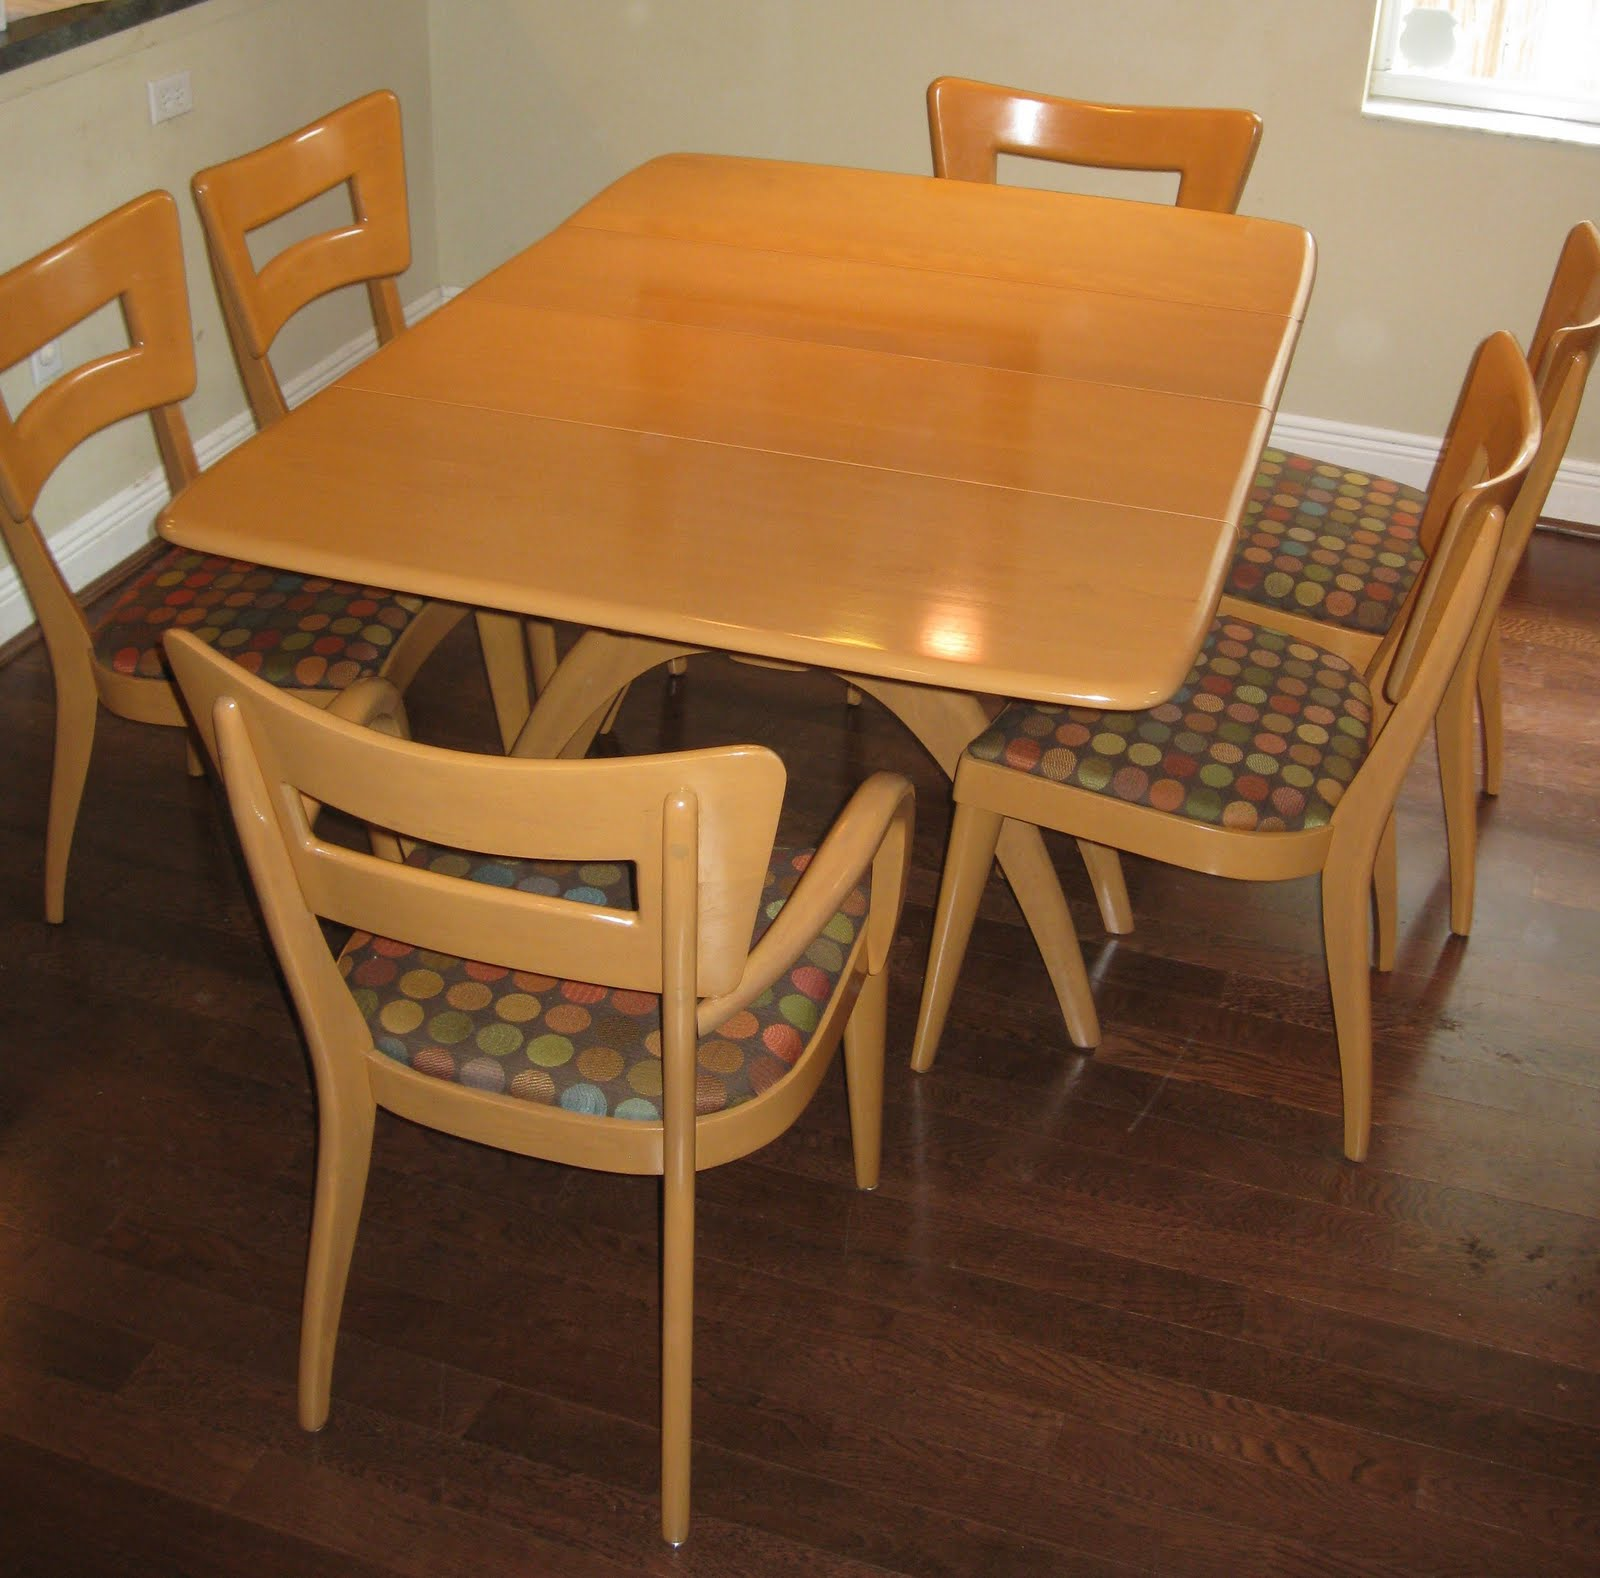 Our Core Business Is Refinishing Restoring Modern Line Heywood Wakefield Furniture The H W Company Was In Many Years Beginning 1826 And